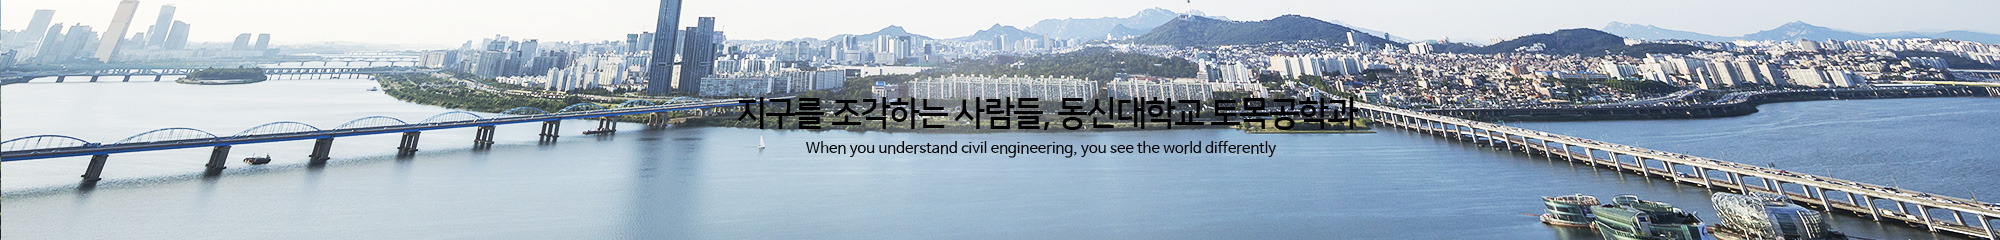 지구를 조각하는 사람들, 동신대학교 토목공학과 When you understand civil engineering, you see the world differently